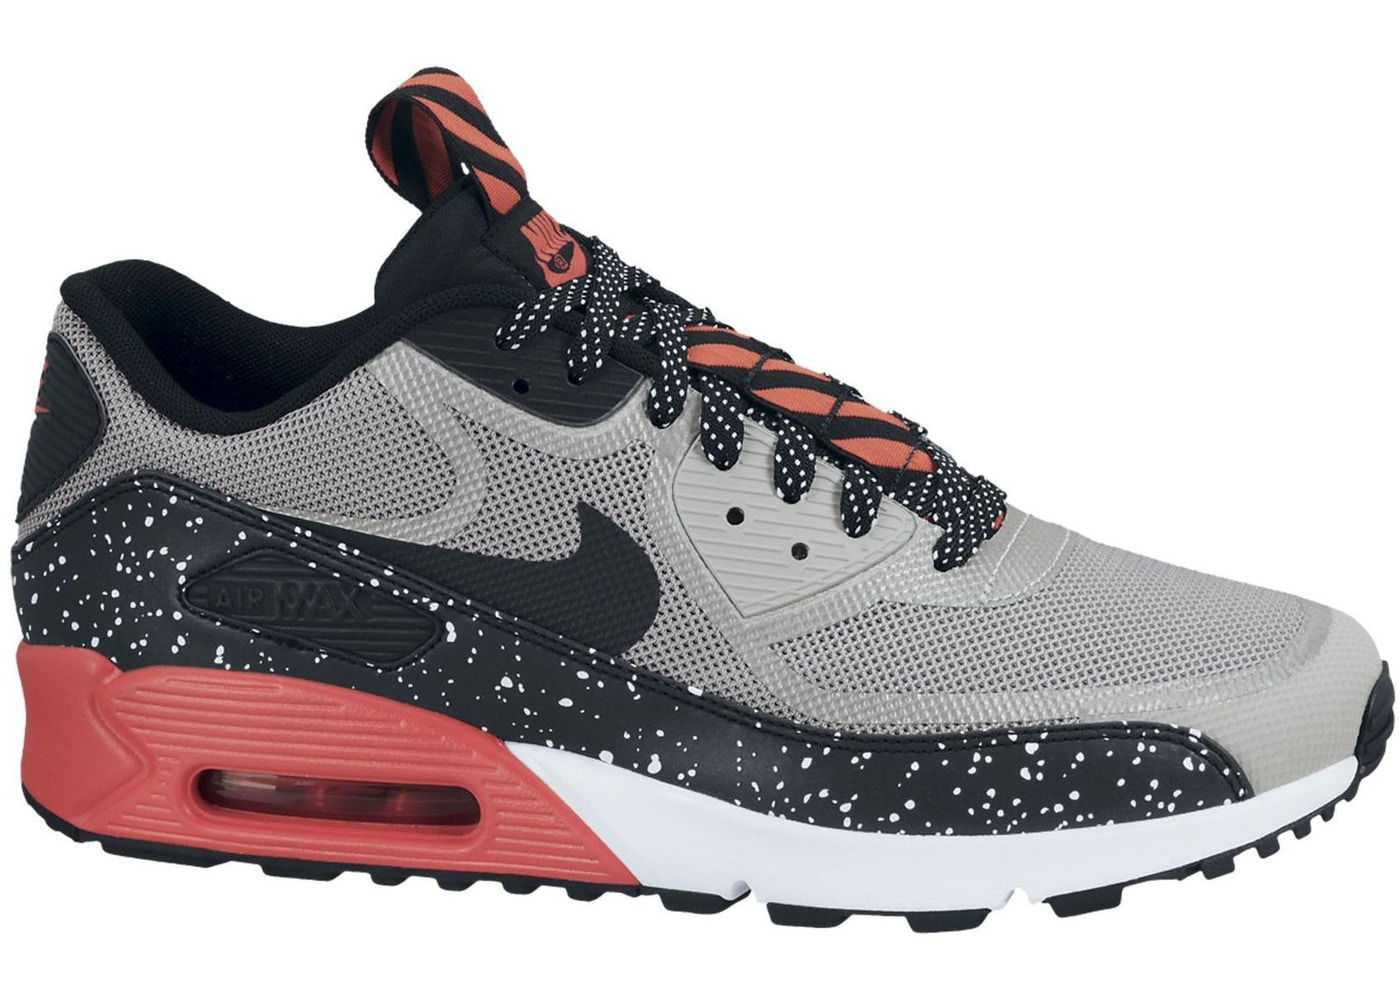 san francisco 58b35 c3f5c Air Max 90 CMFT Tape Reflect - 616317-006